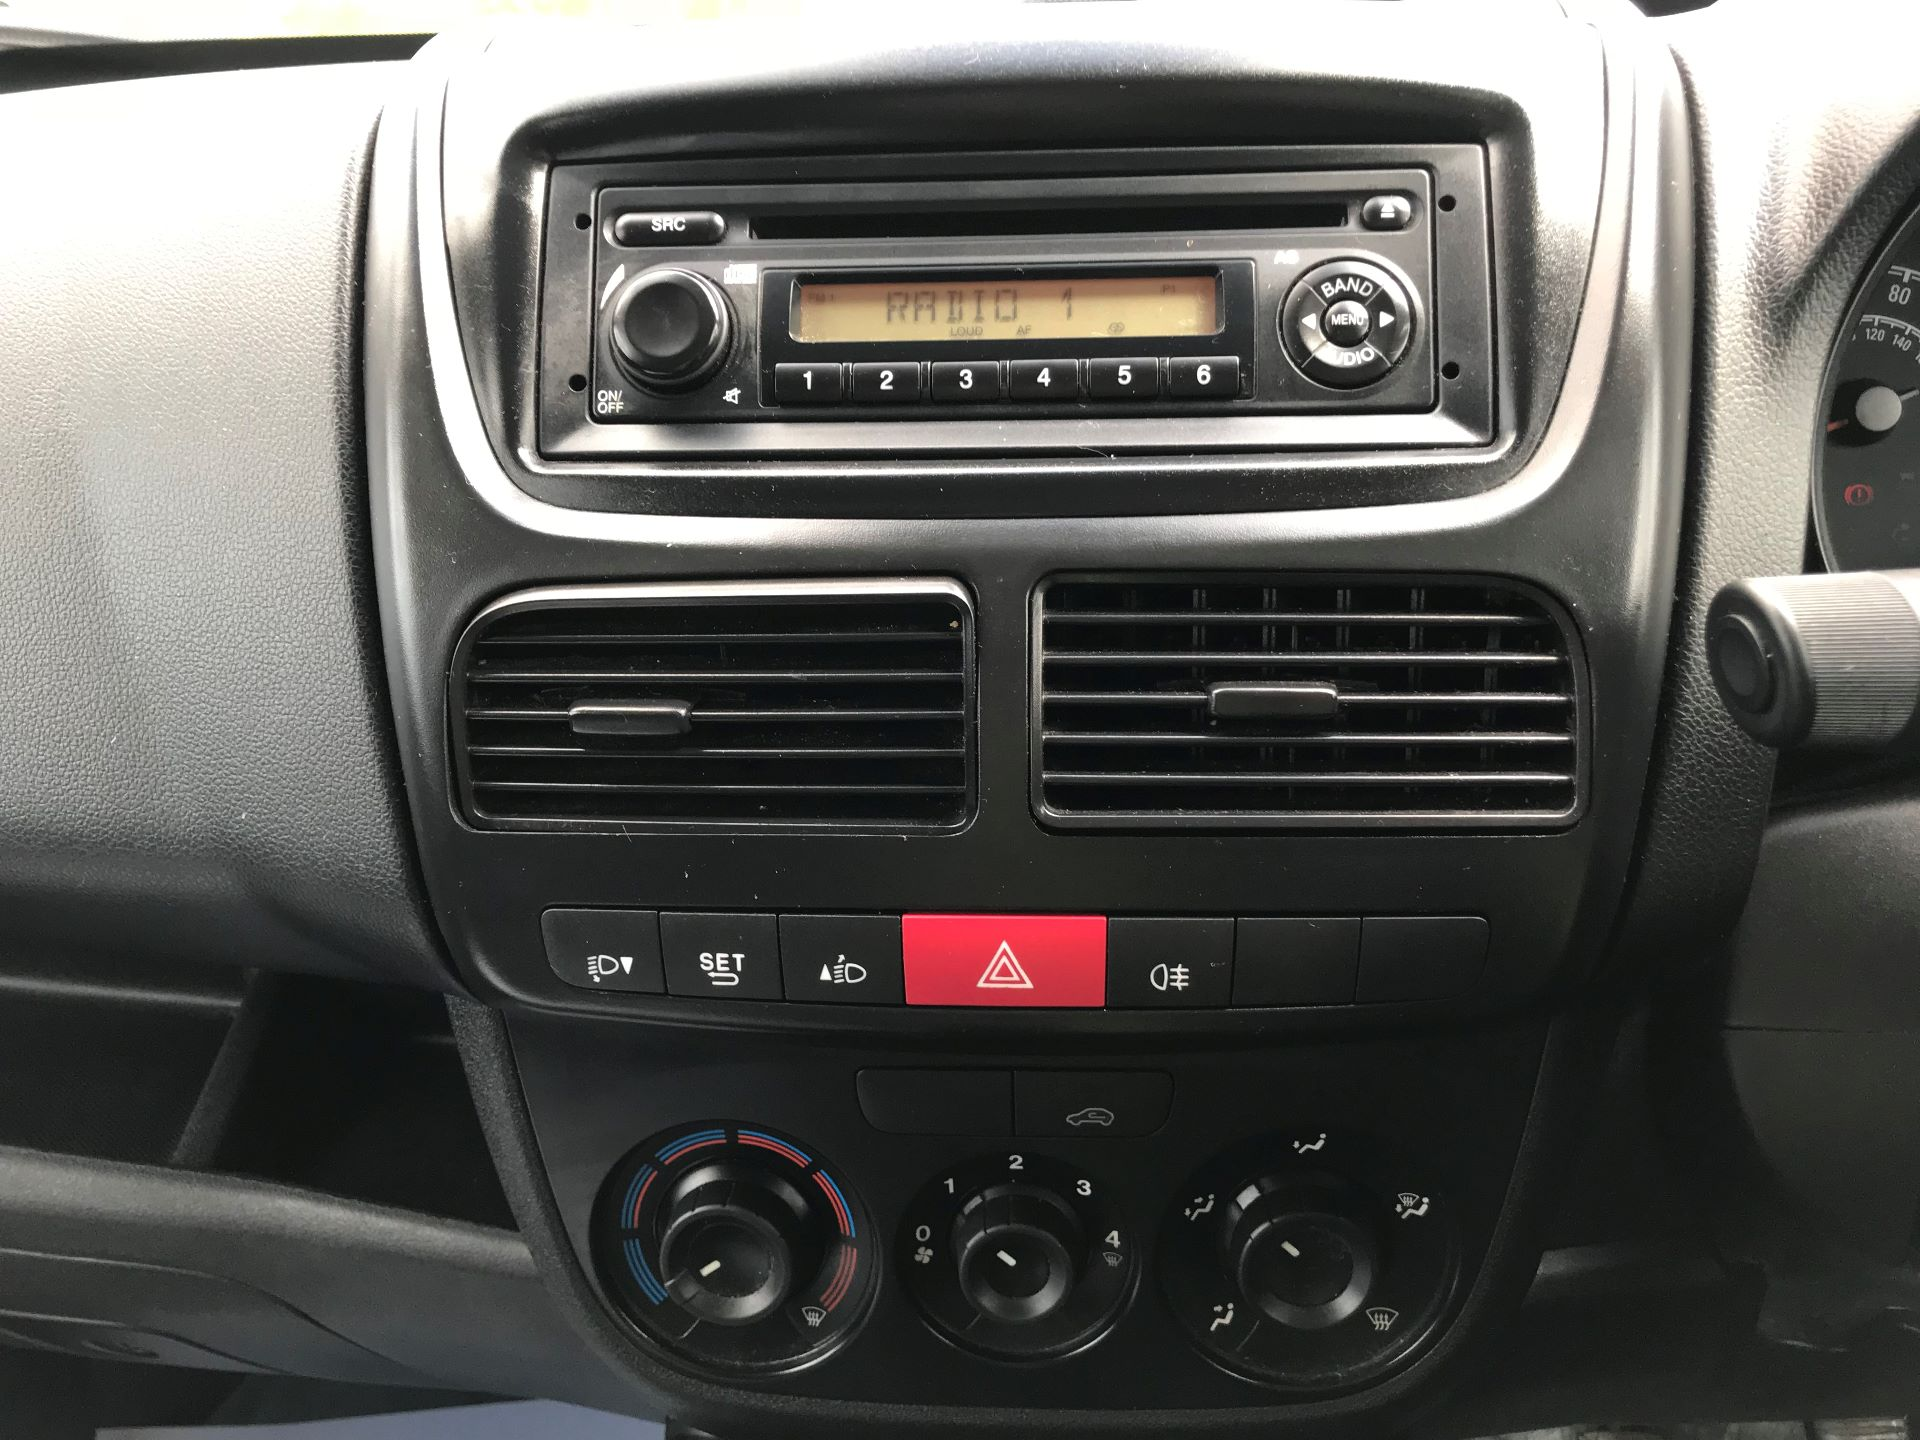 2015 Vauxhall Combo  L1 H1 2000 1.3 16V  EURO 5 (DY65YMK) Image 25